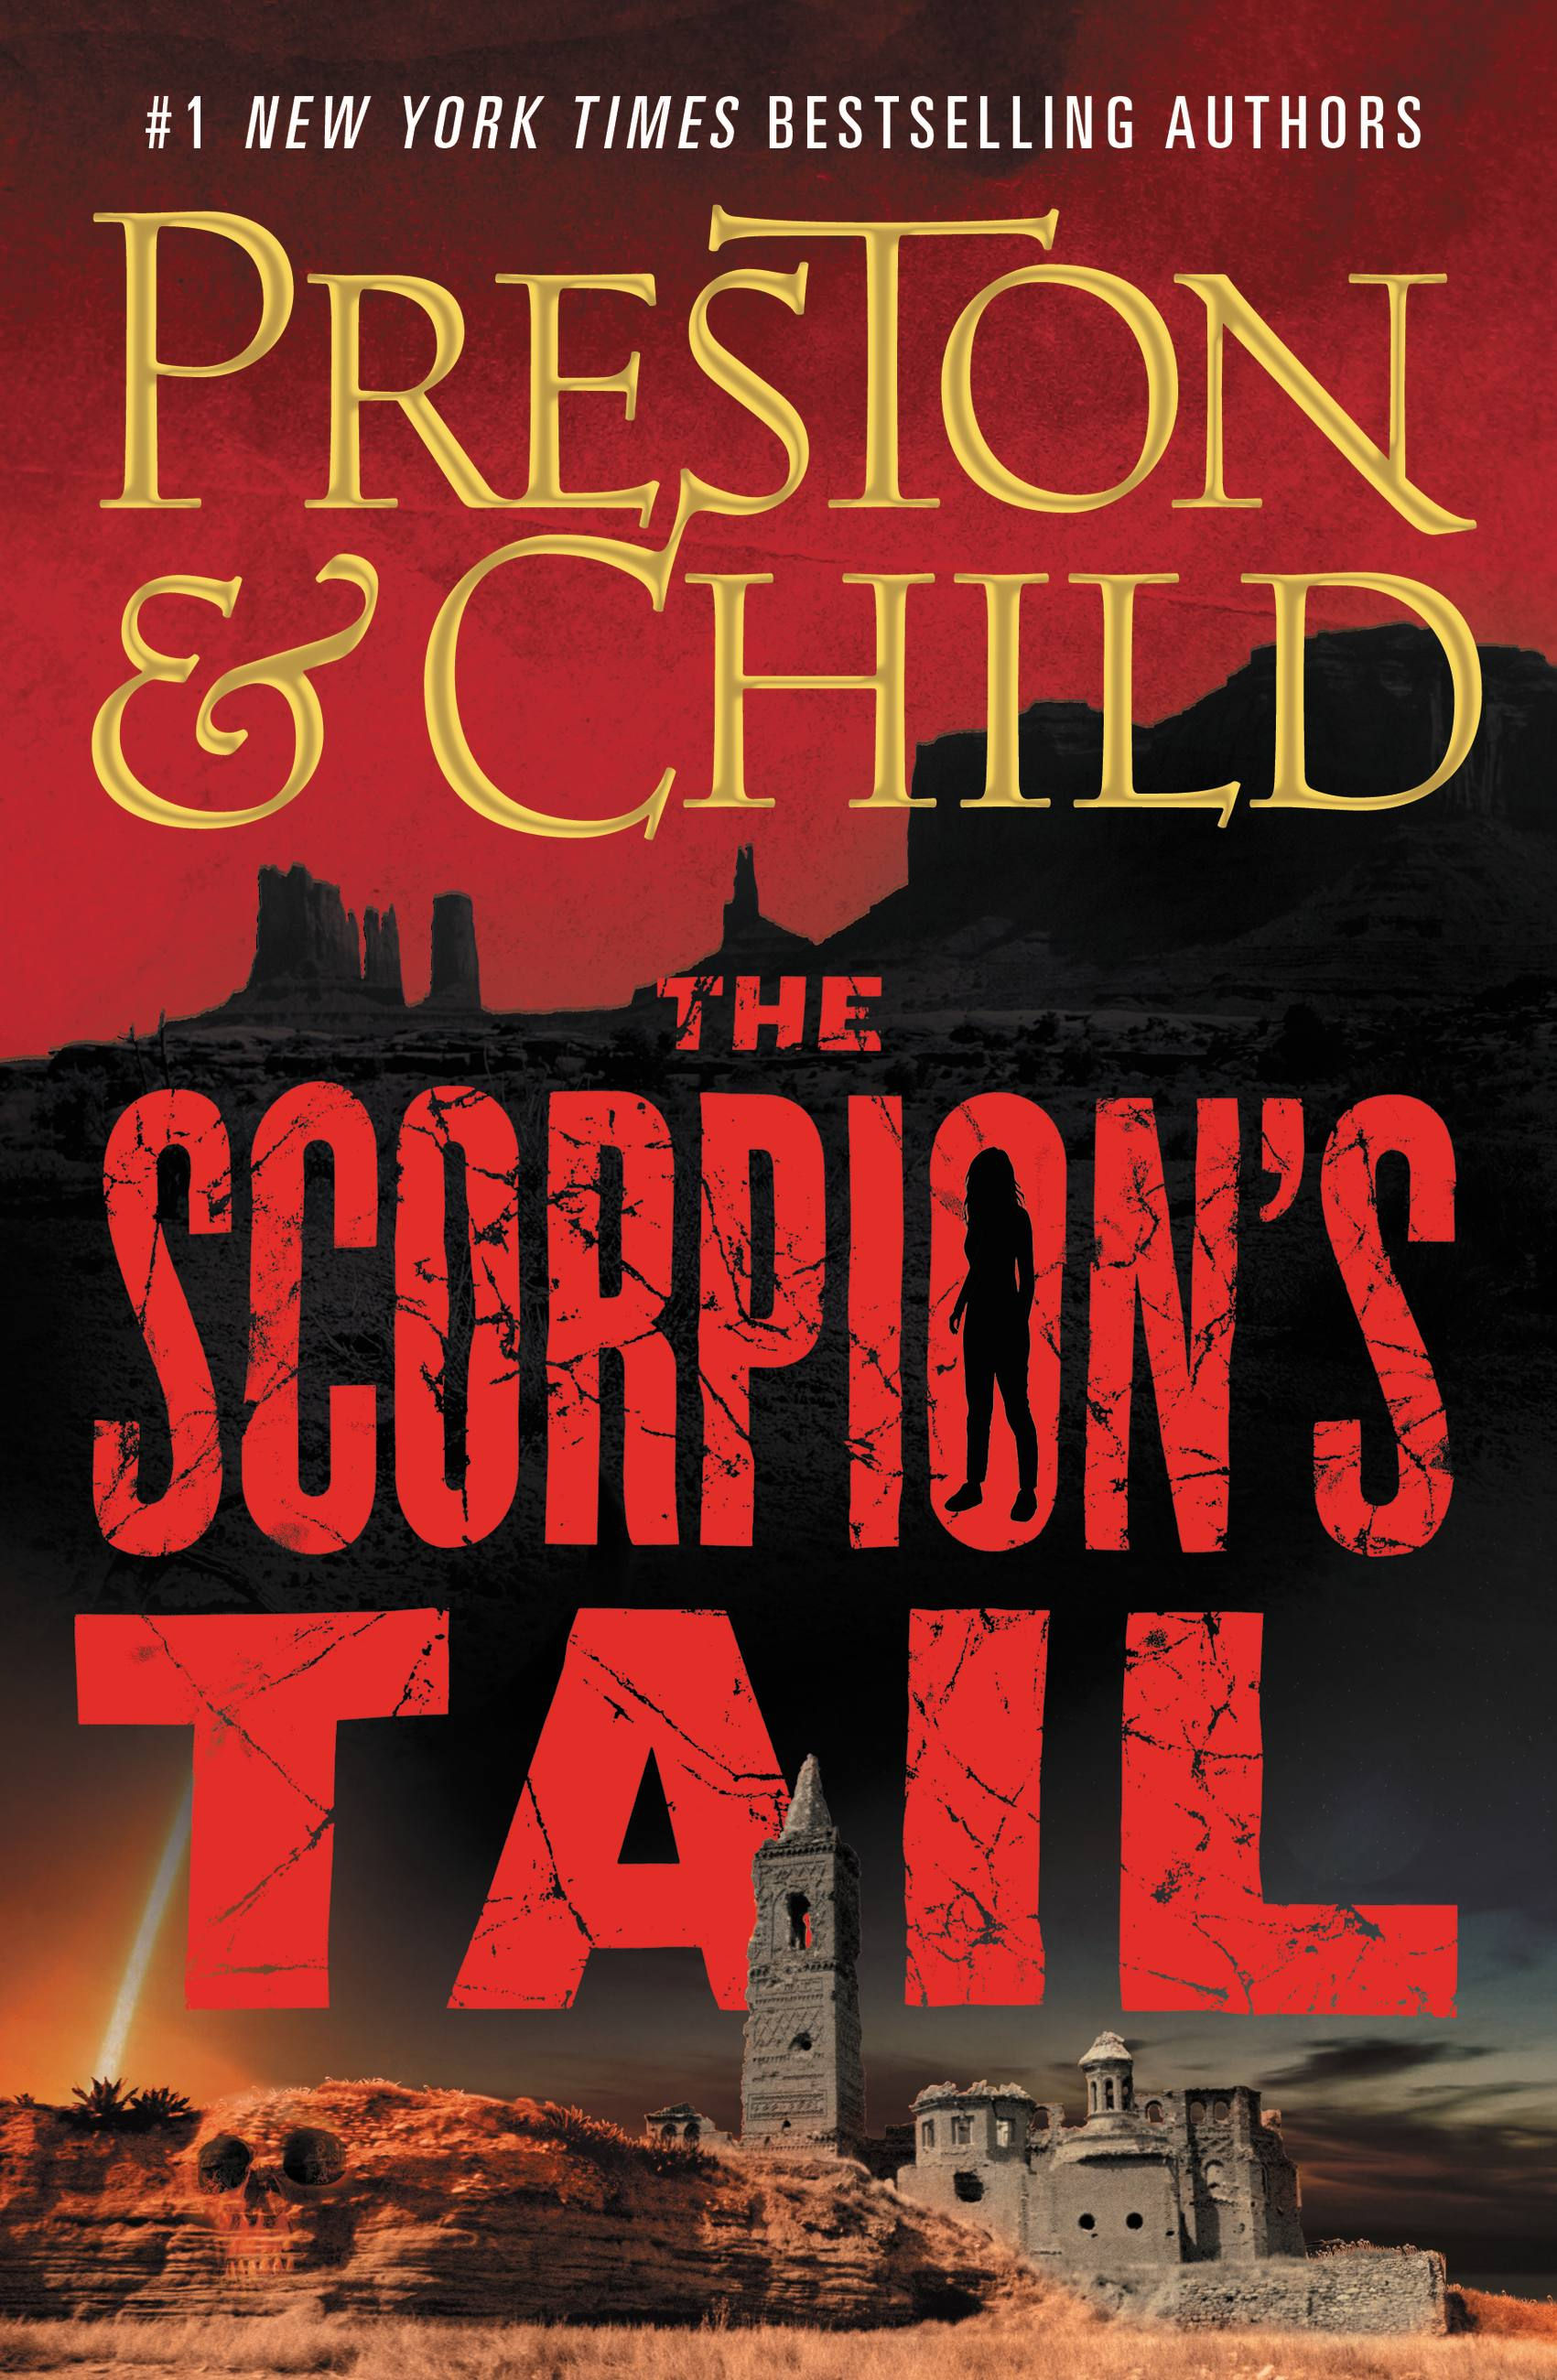 Cover Image of The Scorpion's Tail